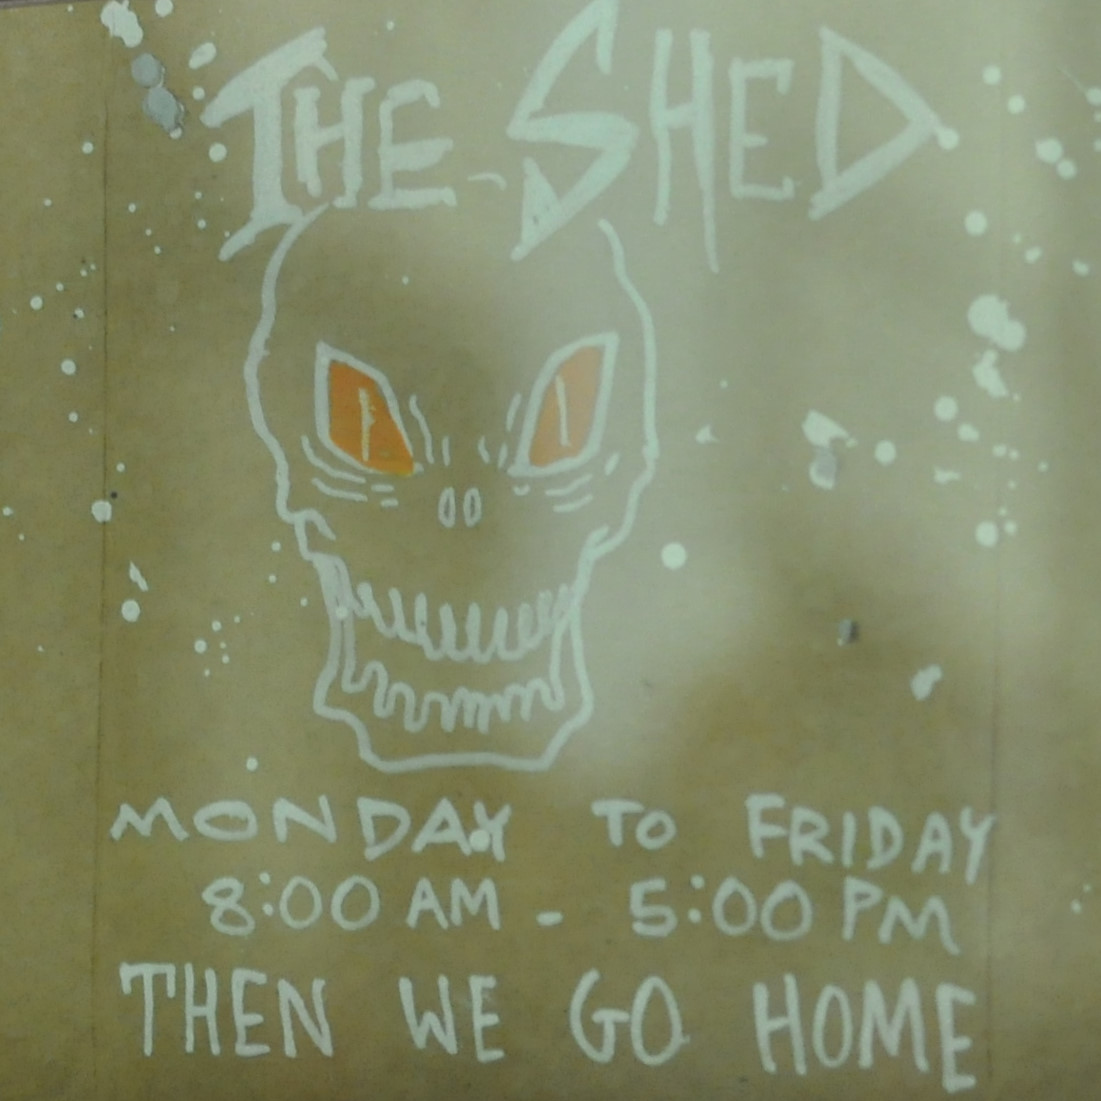 The opening times, and a grinning skull, taken from the door of Taylor St Baristas, The Shed.